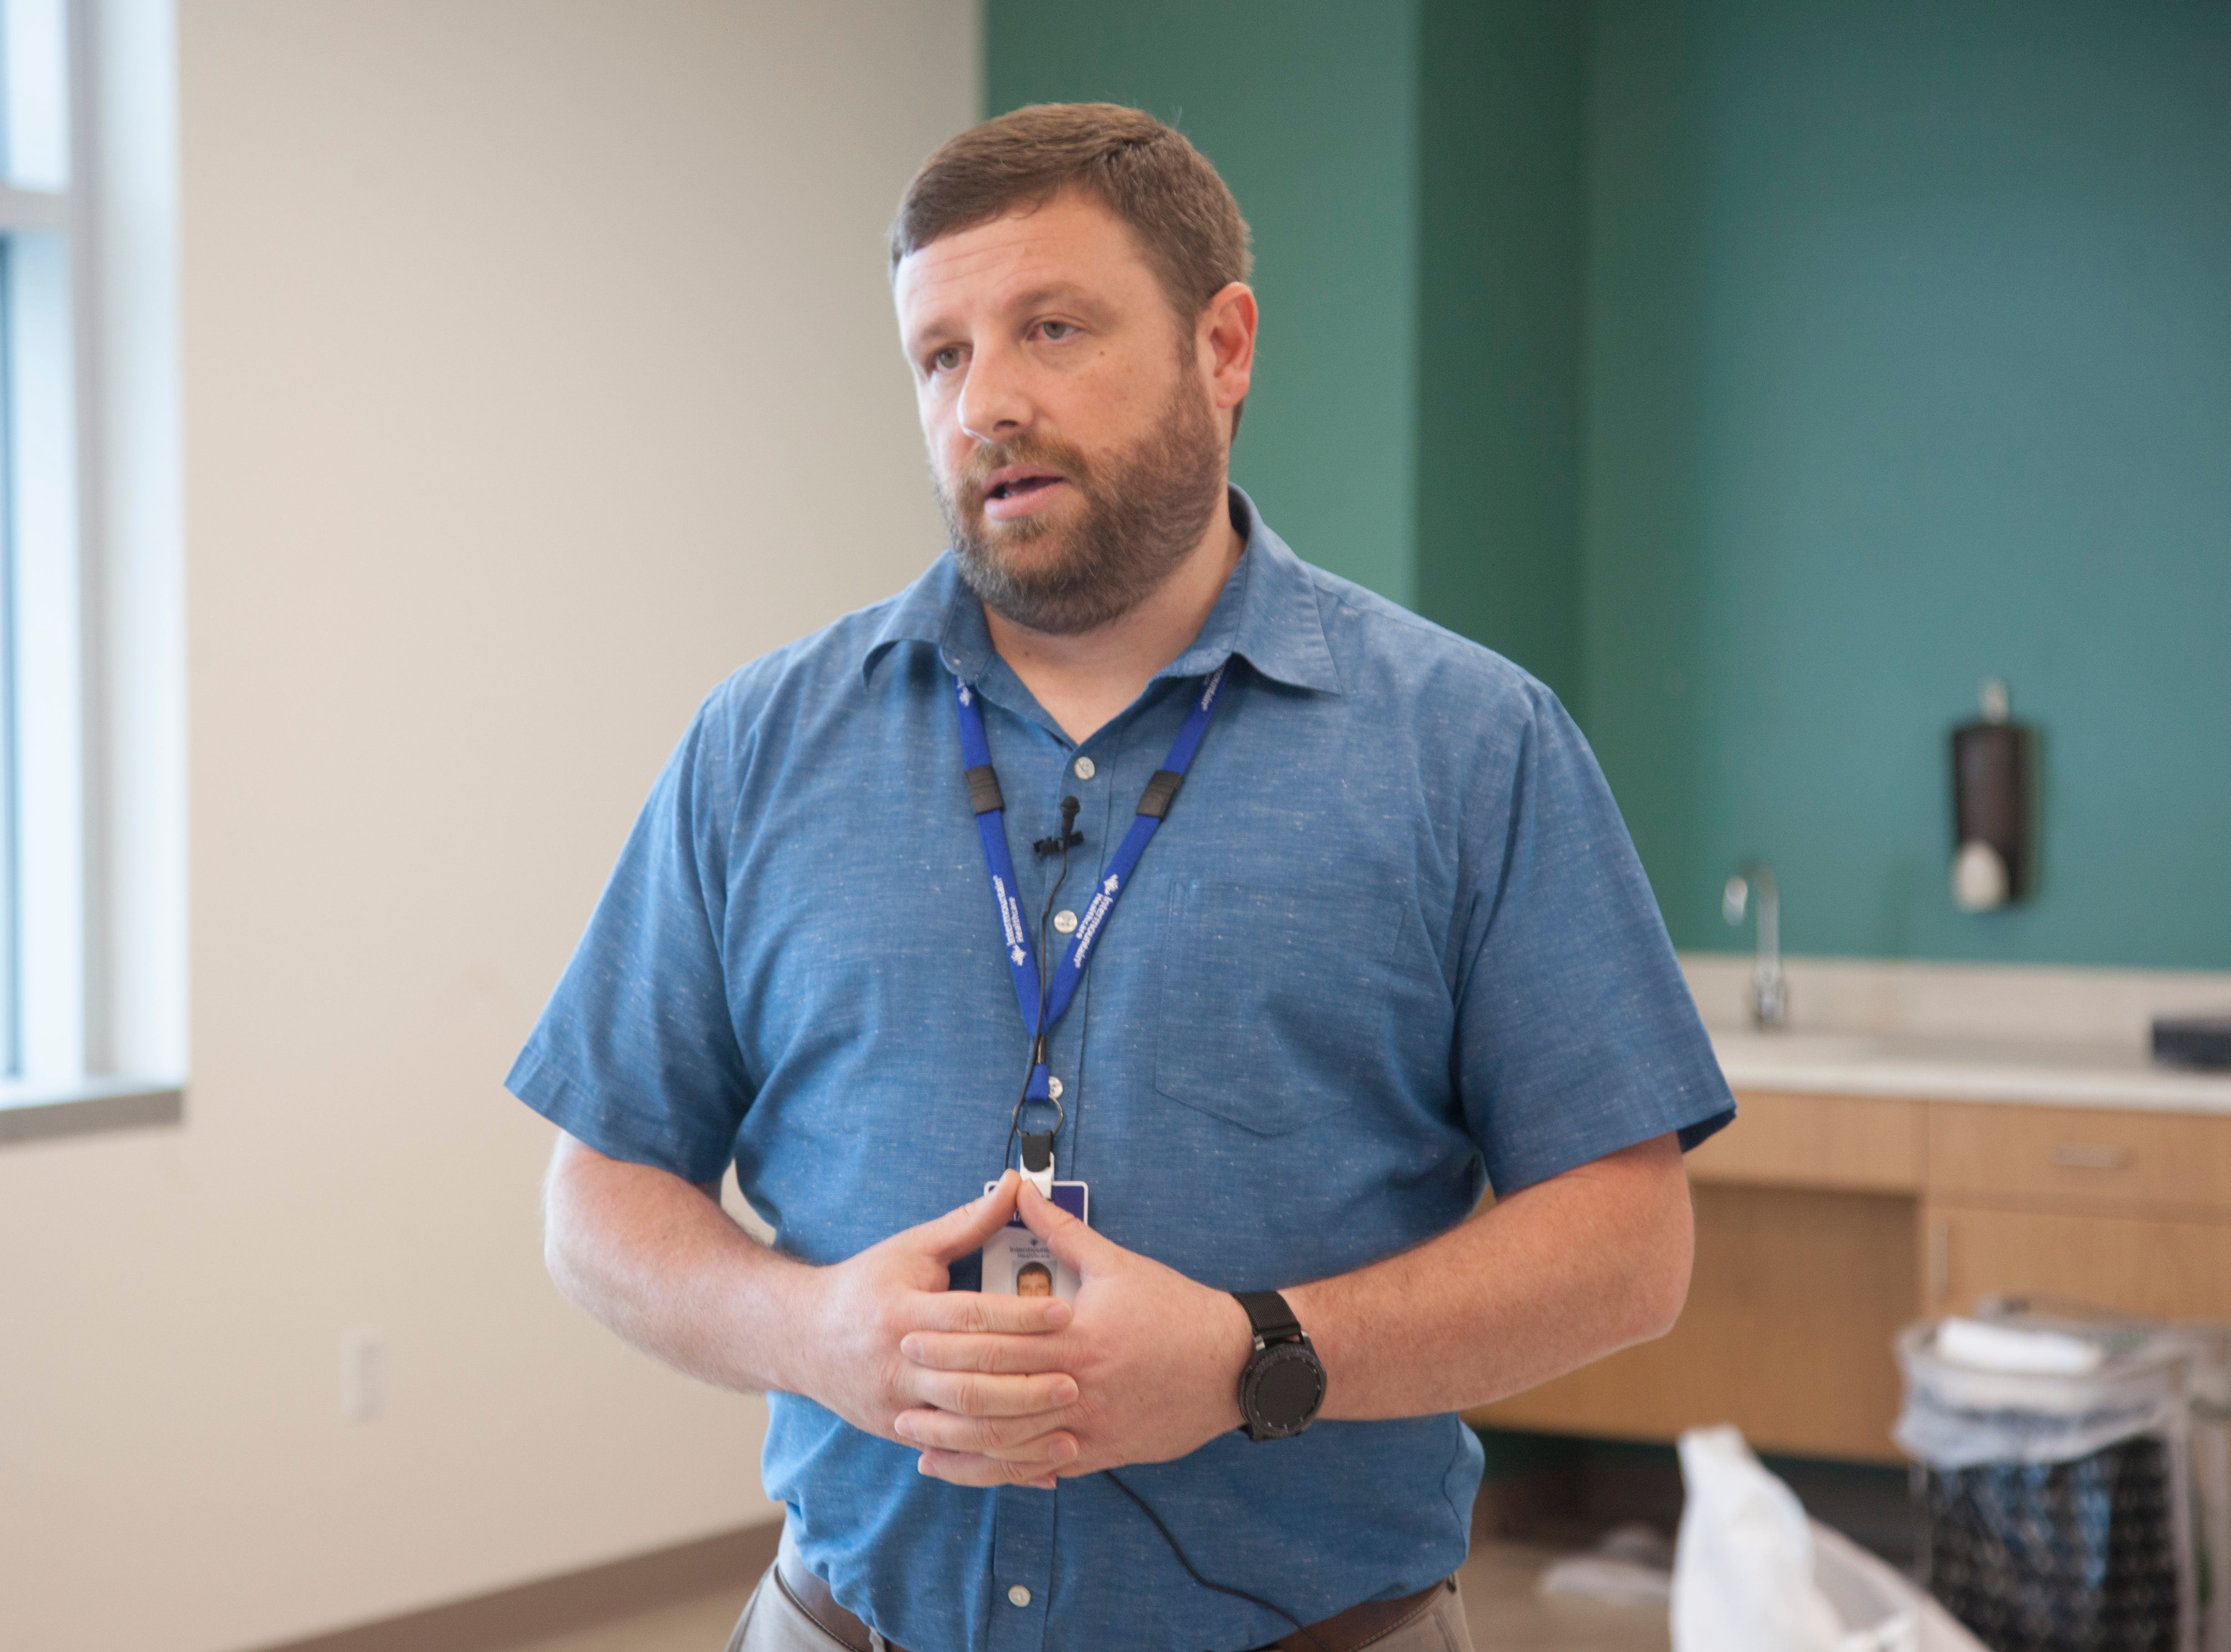 Jeremy Nielsen is the behavioral health department manager at Dixie Regional Medical Center.